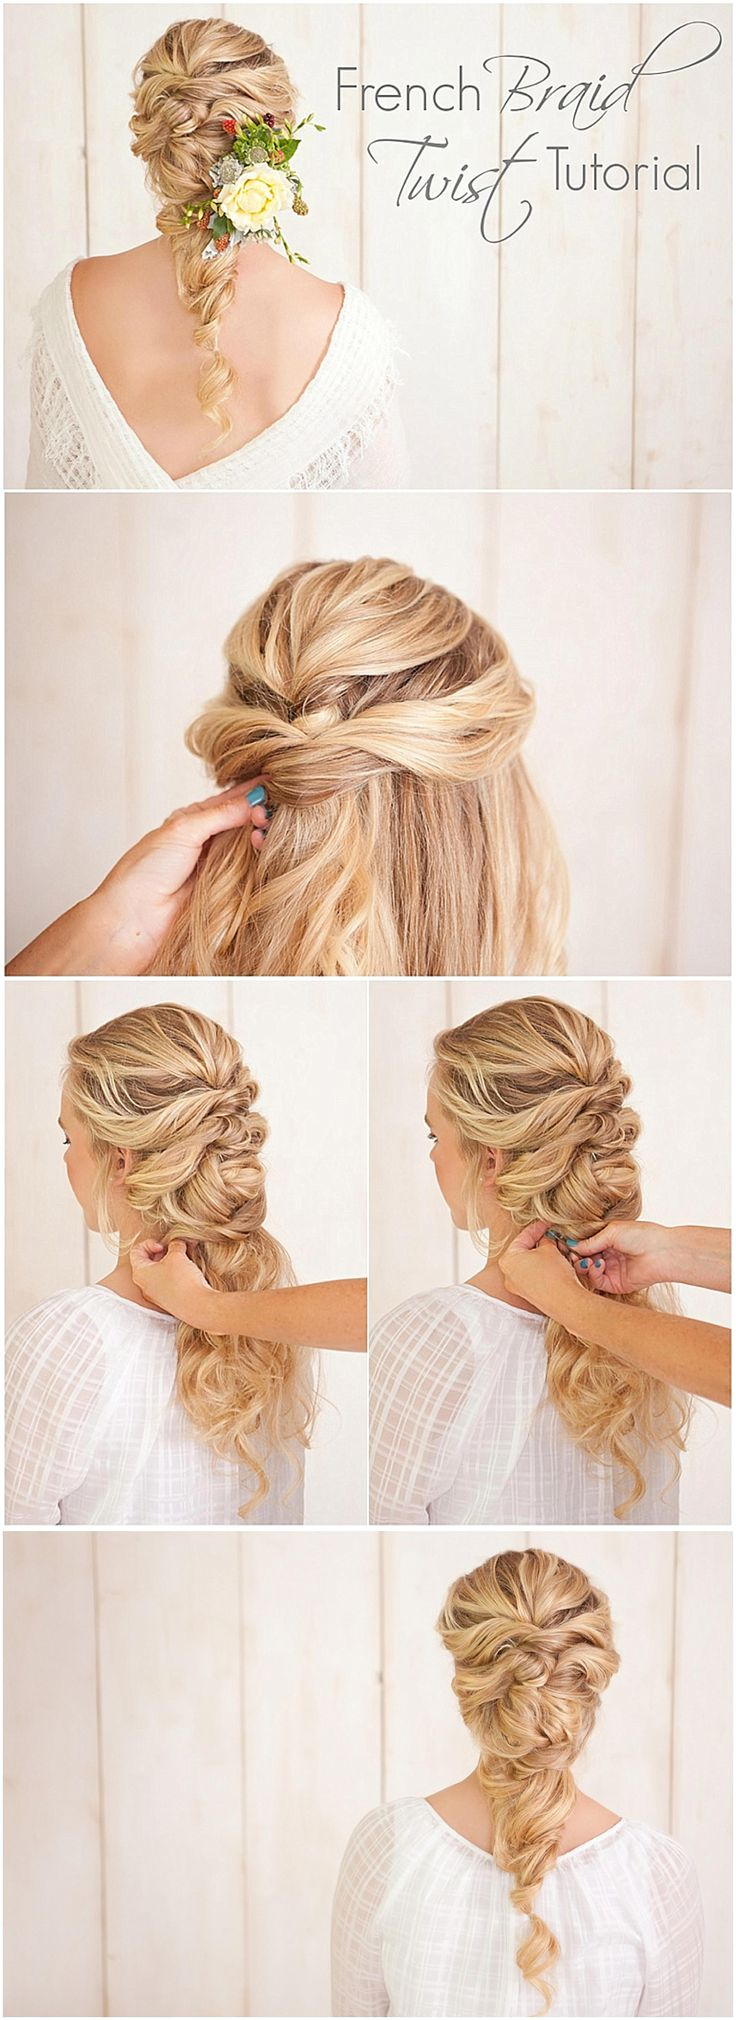 Your wedding WARKOCZ FRANCUSKIFrench braid twist